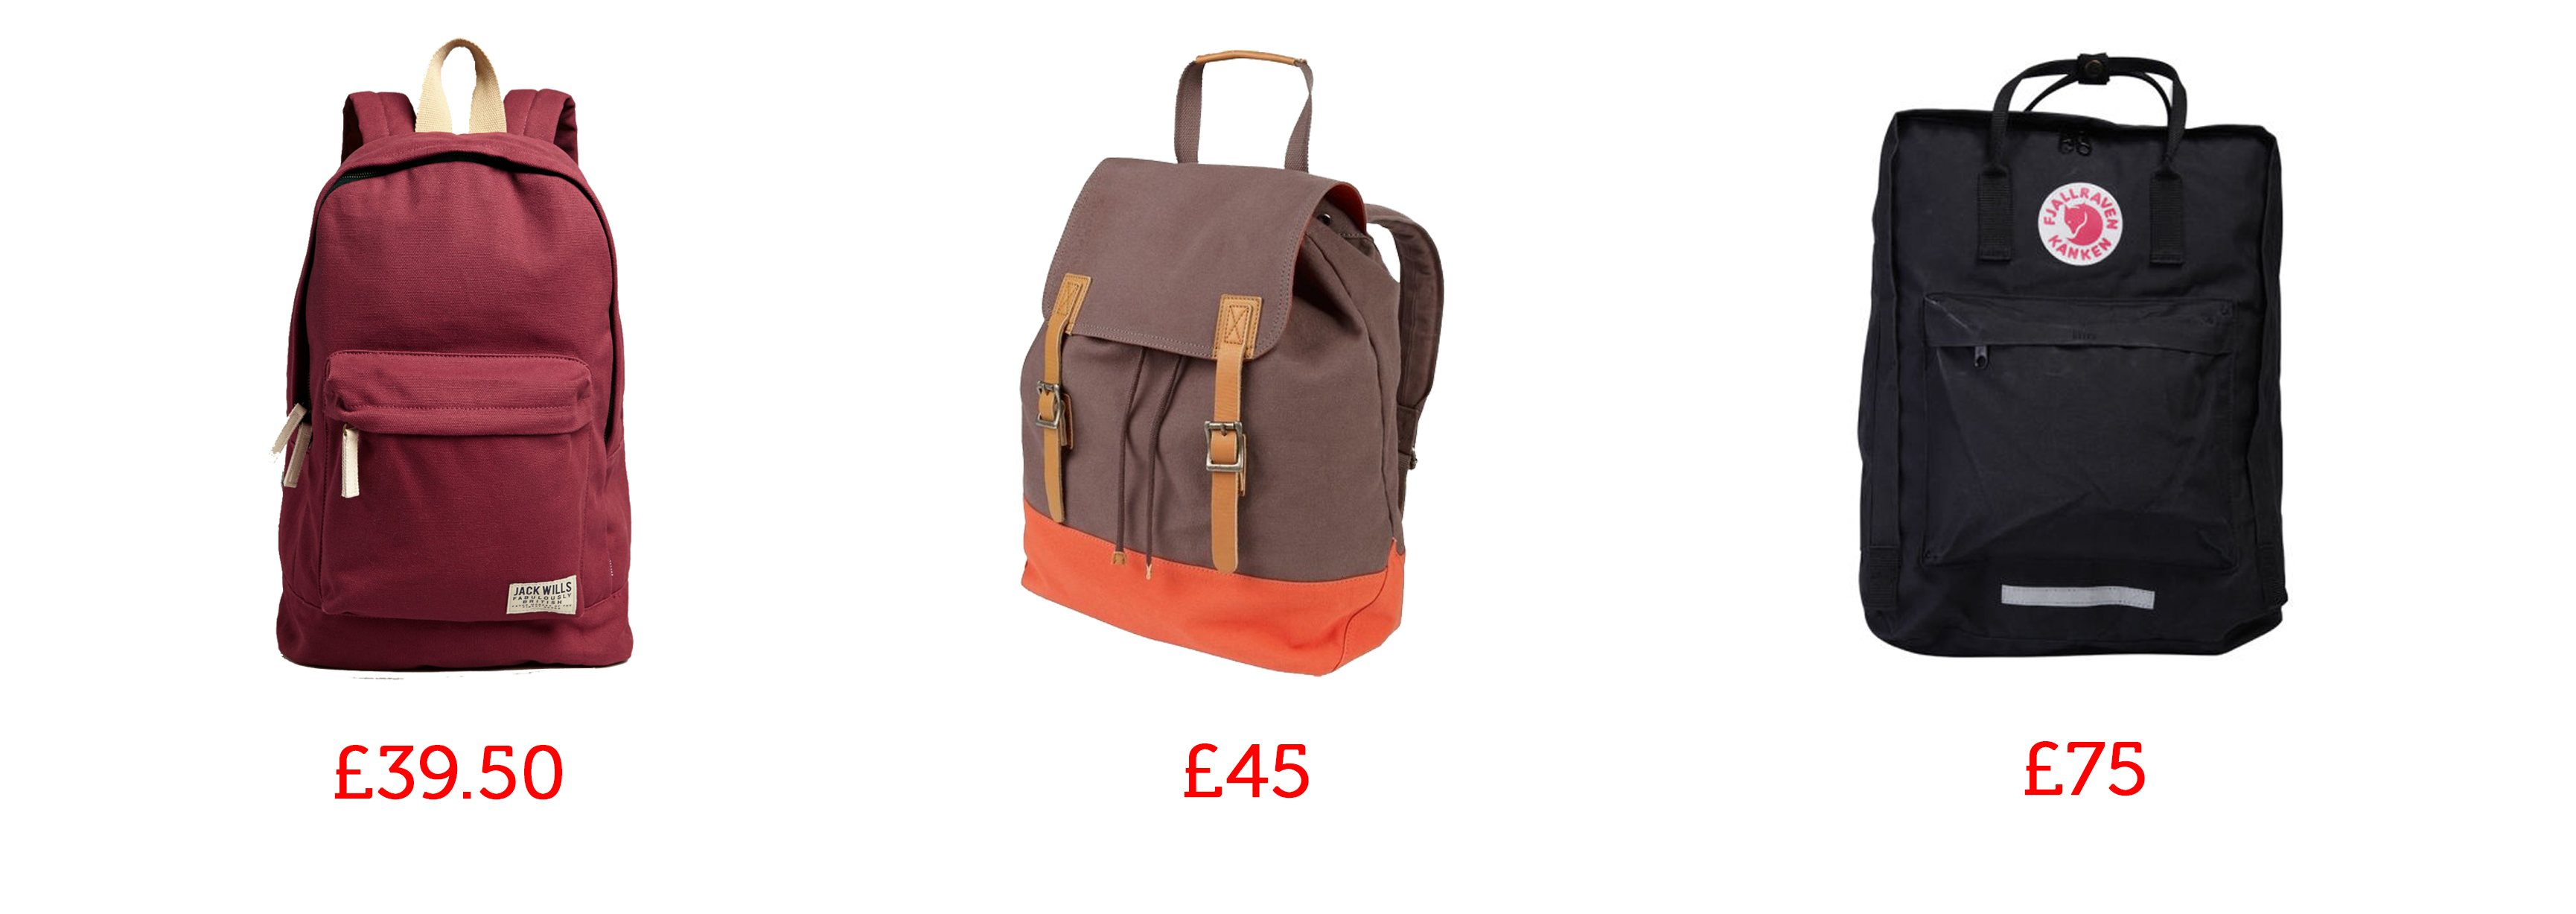 rucksacks backpacks man bags fatface jack wills mybag